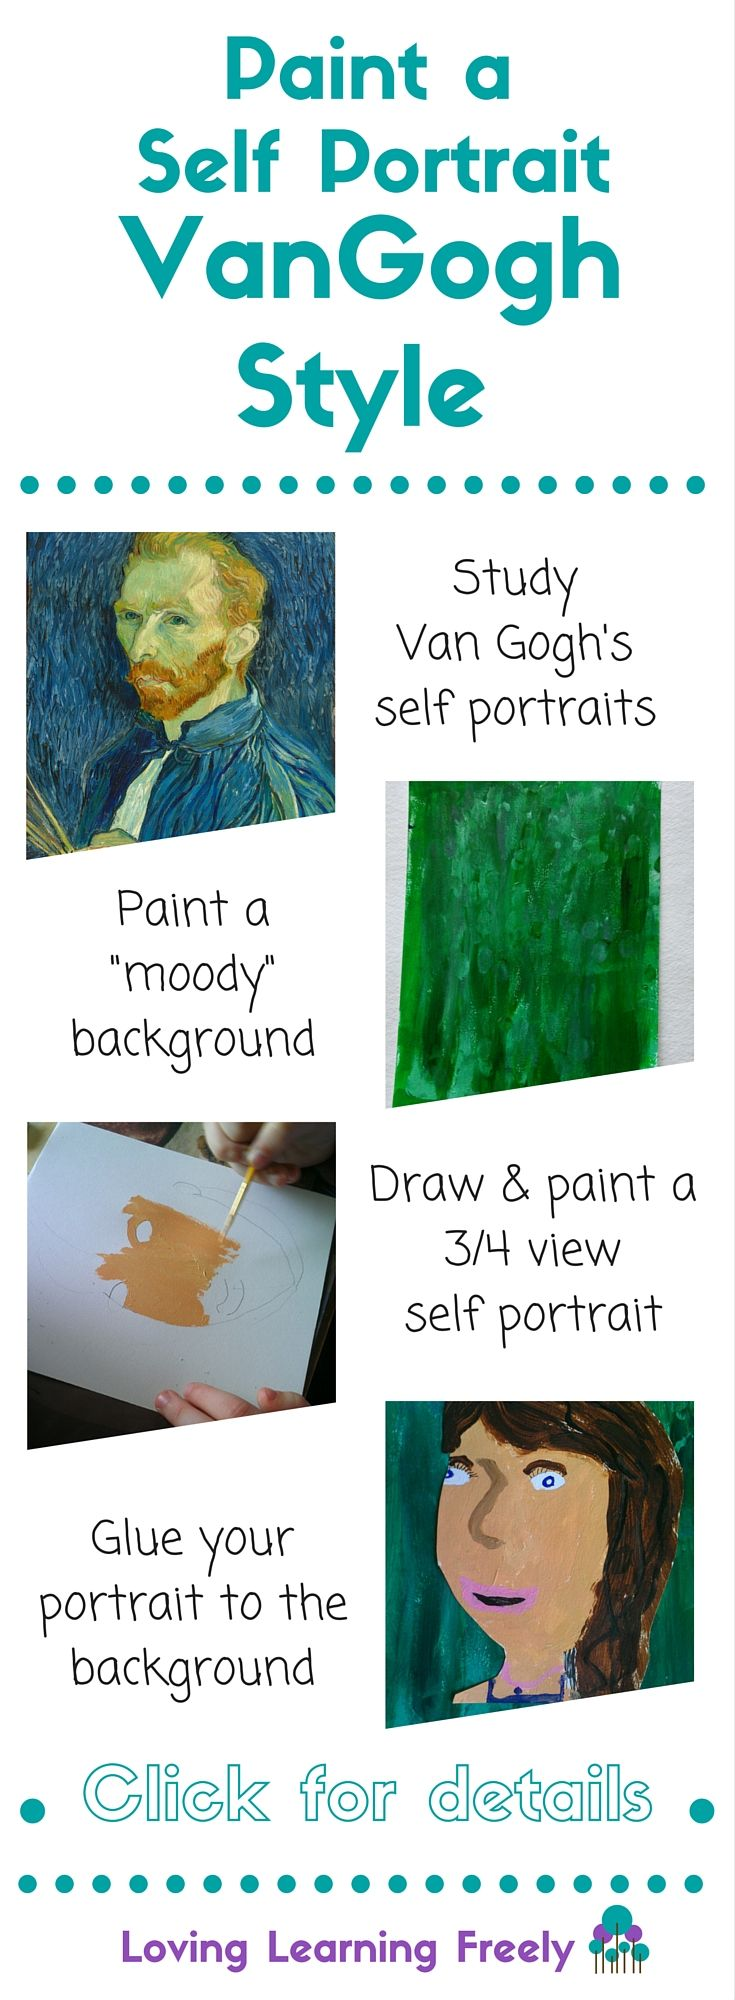 Paint a Self-Portrait Van Gogh Style...VanGogh painted over 30 self portraits. With this art lesson, kids study Van Gogh's self portraits and paint their own.